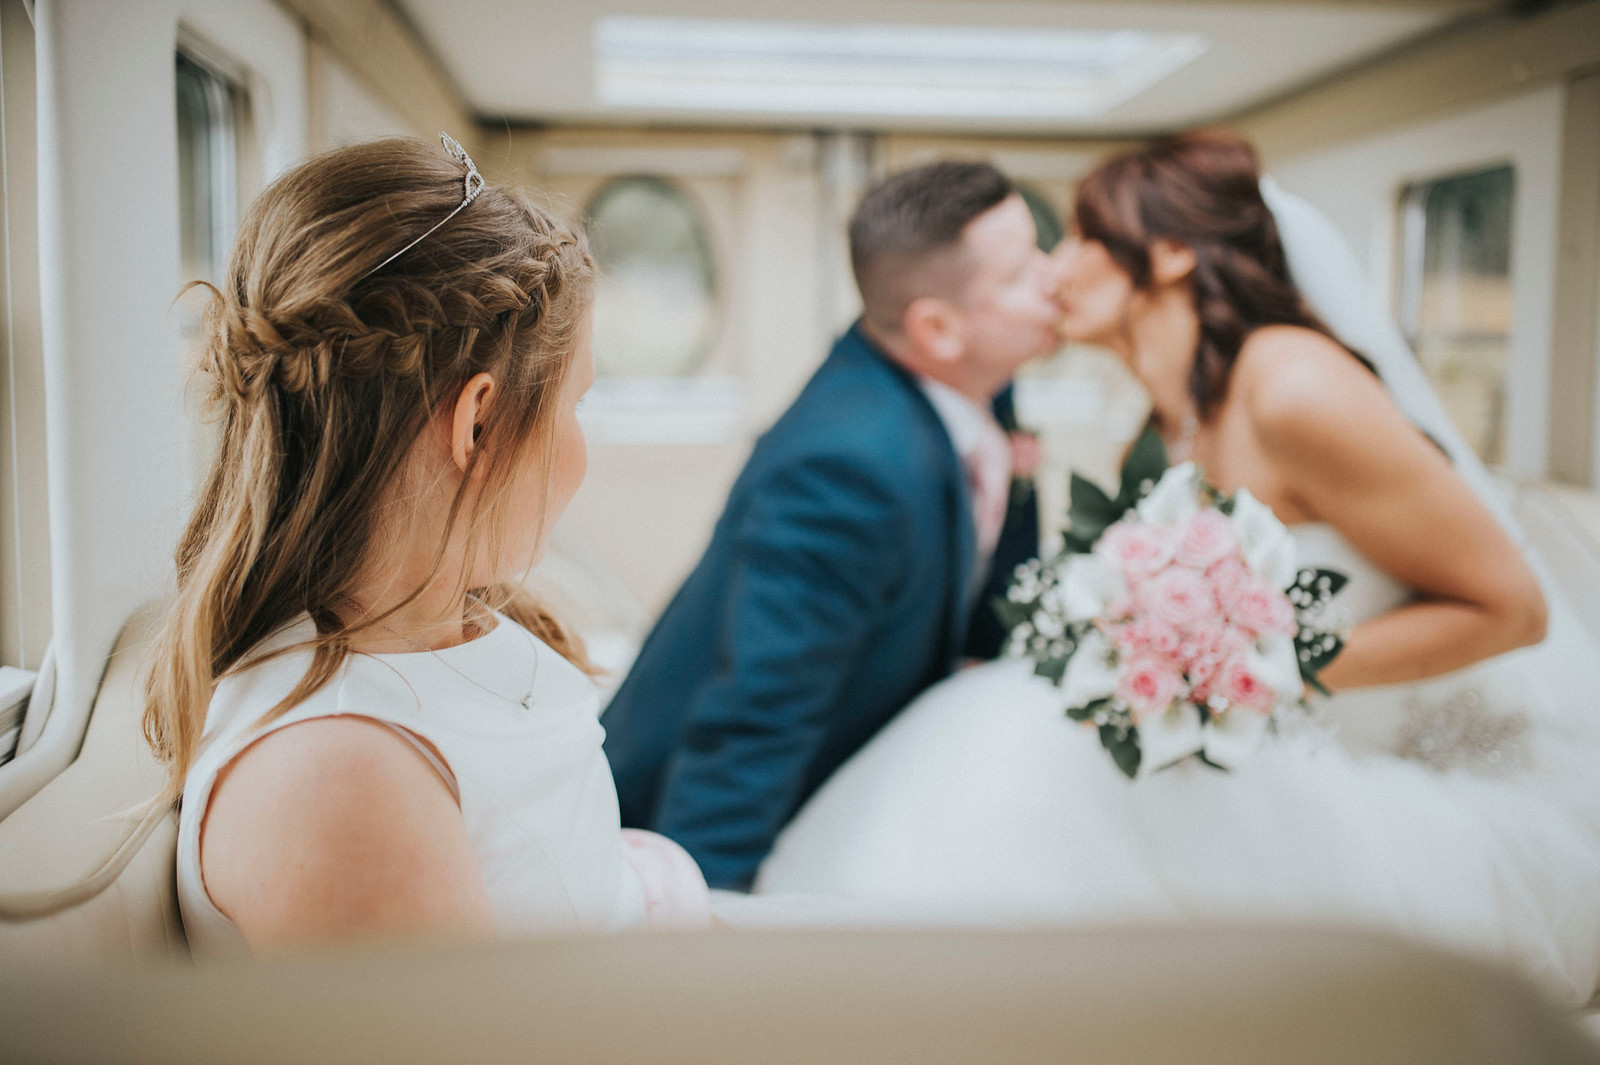 Bride and groom kiss with their daughter behind them - Wedding Photographer South Wales